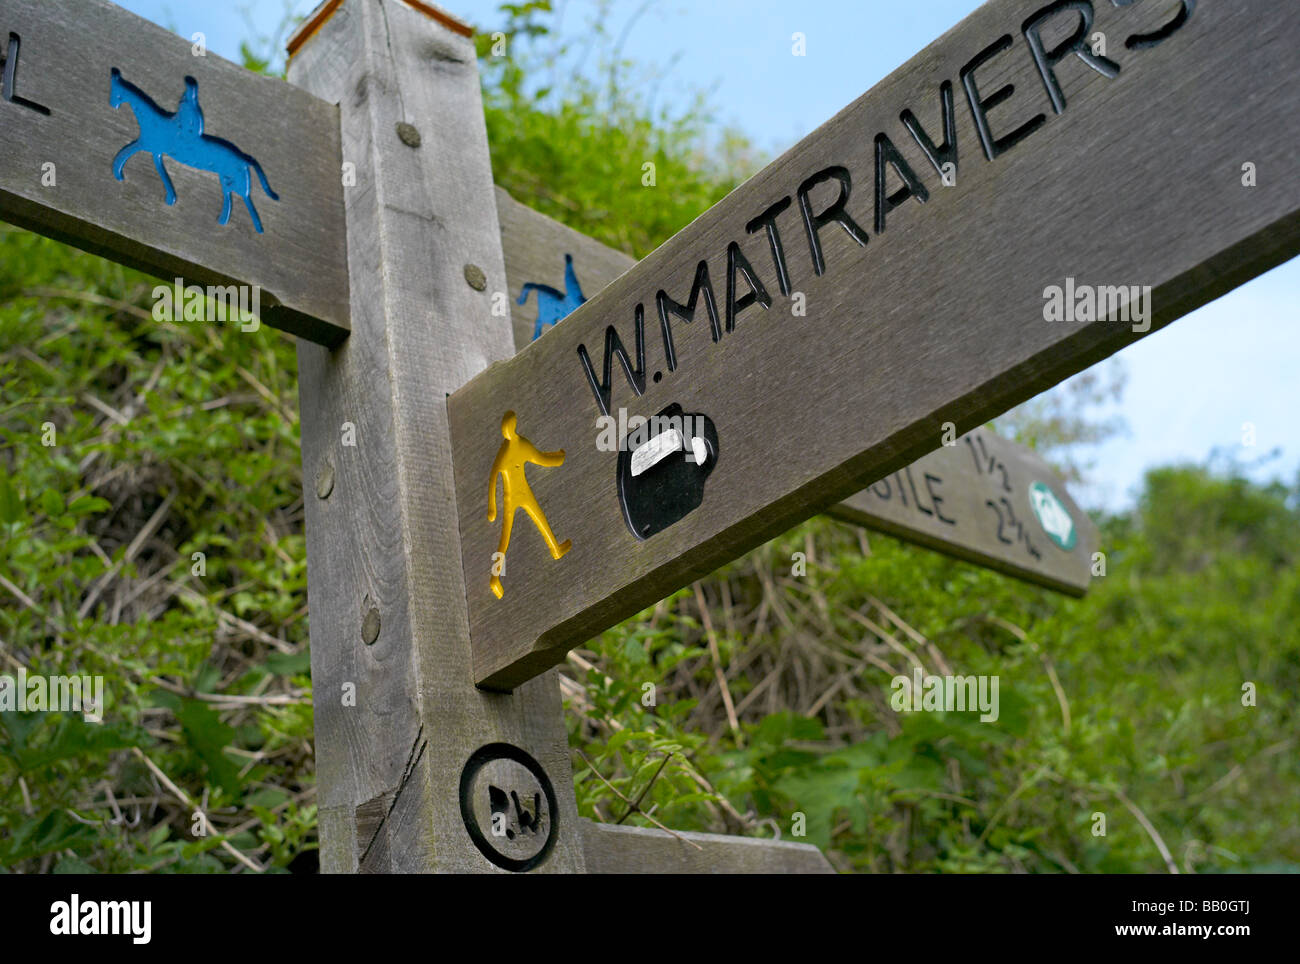 Signpost for public footpath, UK - Stock Image